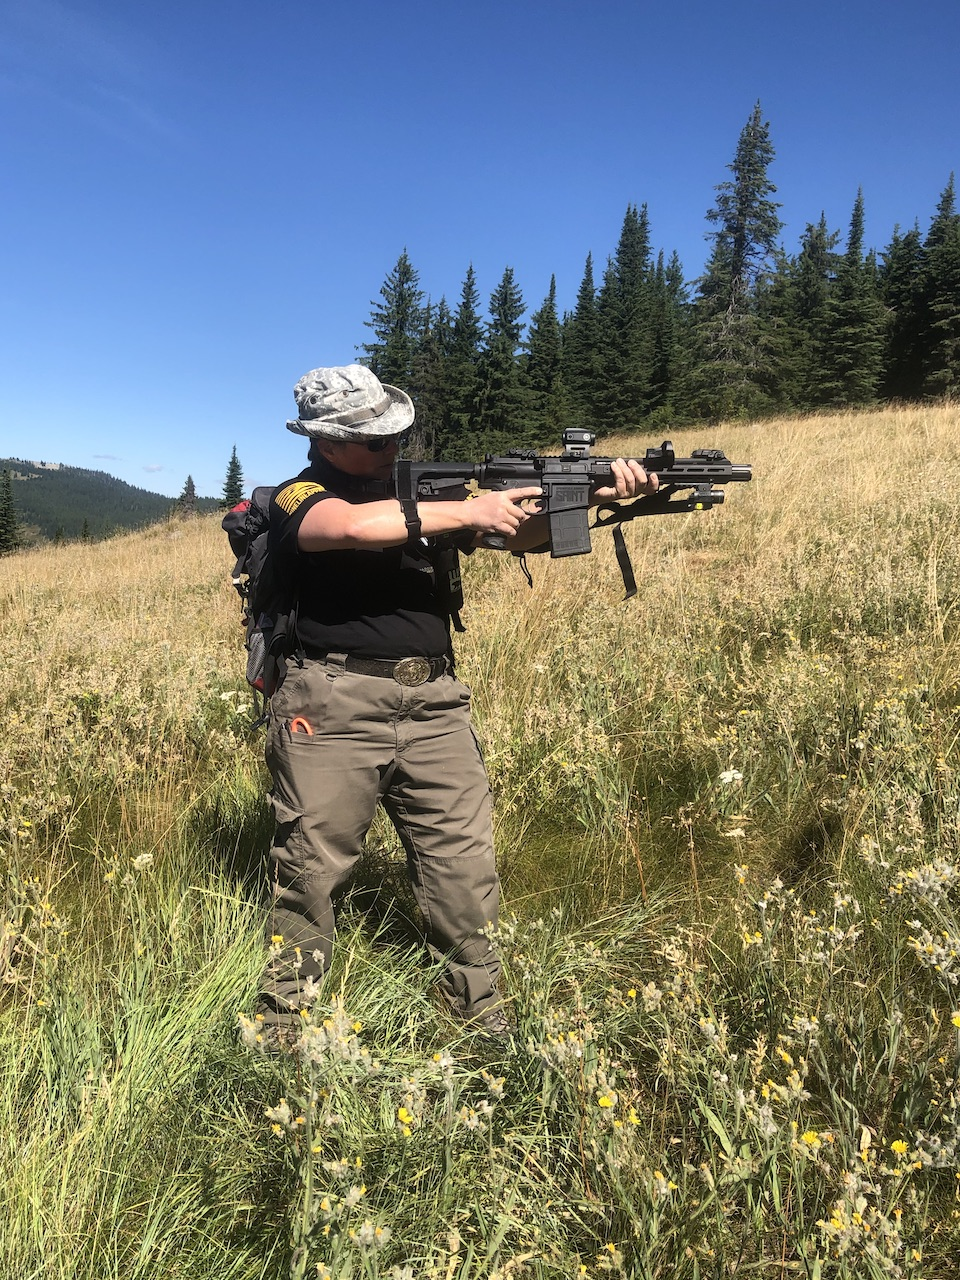 Shooting using pistol brace and sling for support(photo credit Sharon J.)